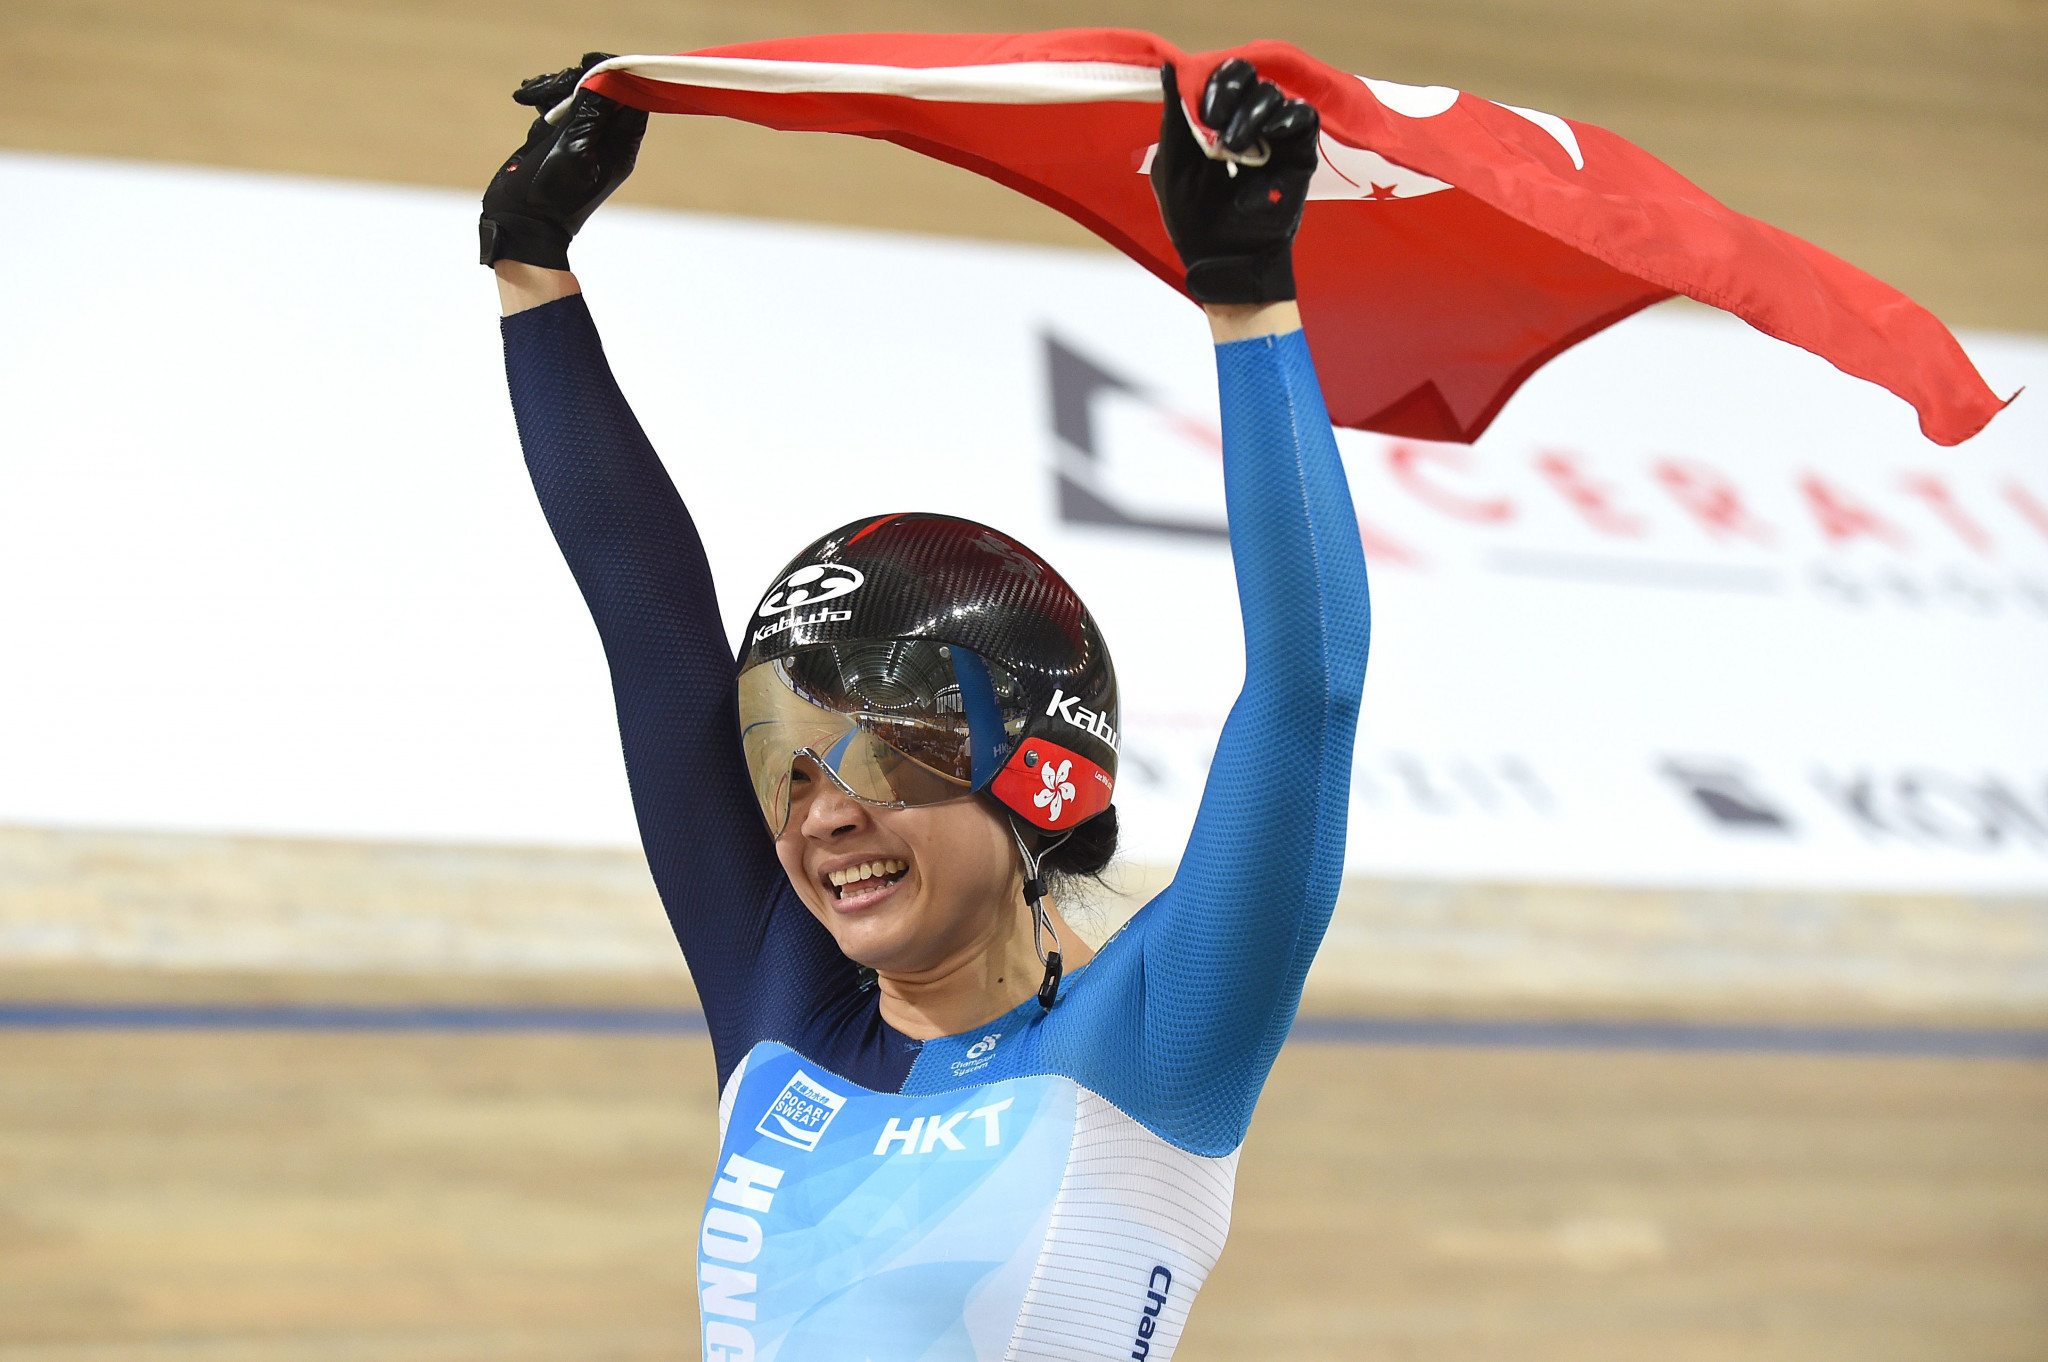 Lee wins second individual gold as UCI Track Cycling World Championships conclude in Poland